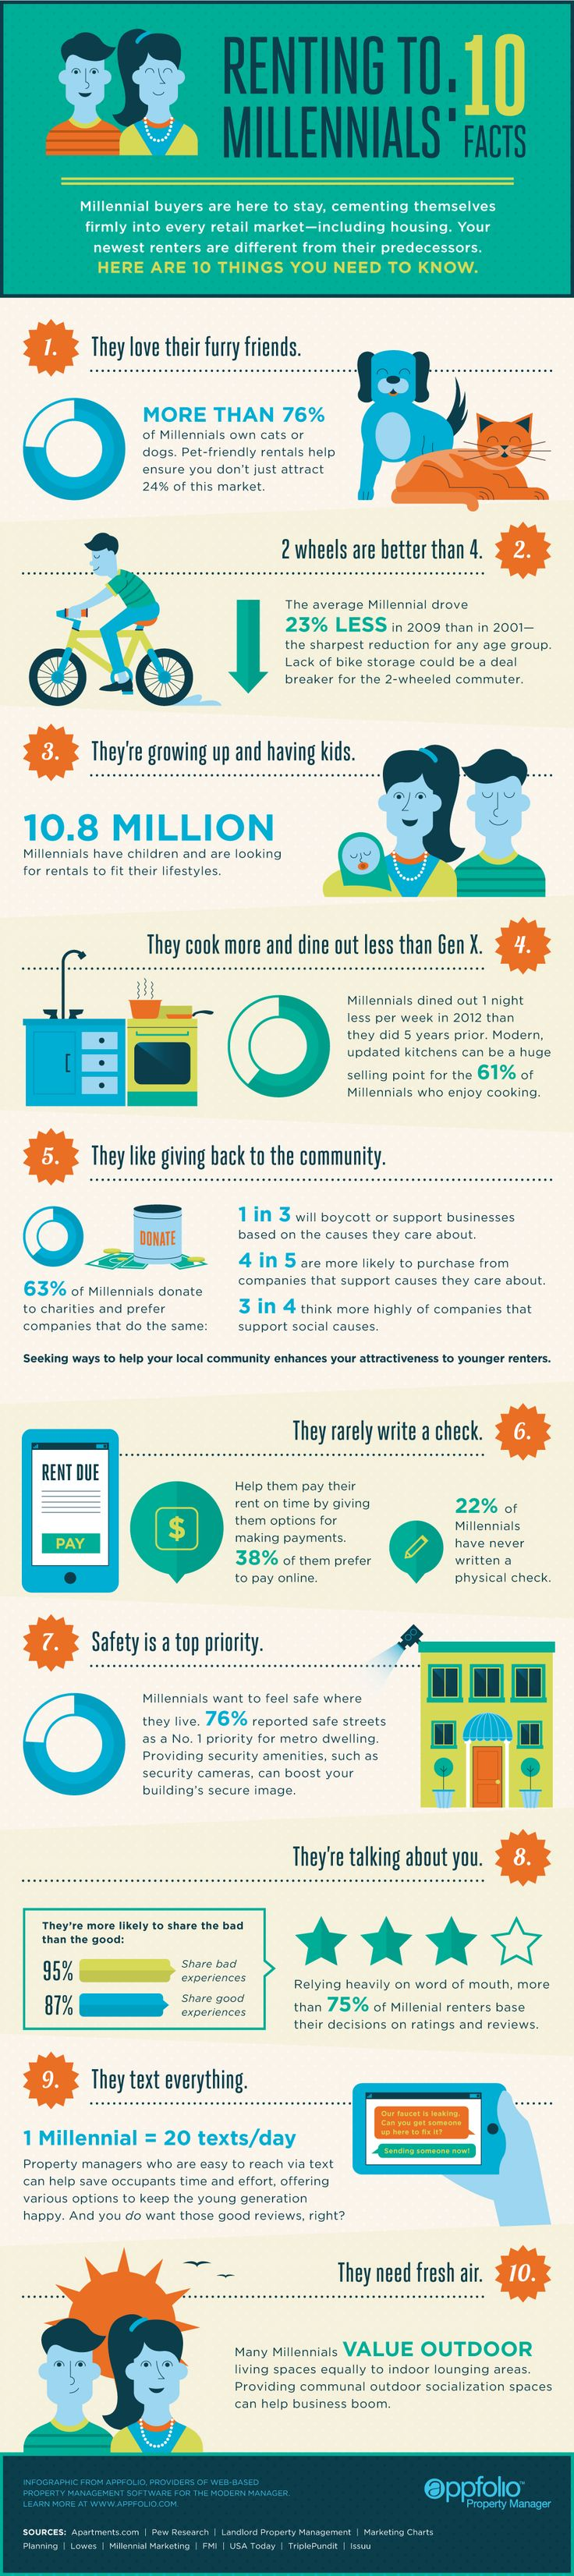 10 Things You Need to Know About The Millennial Renter [Infographic, Multifamily, Property Management, Marketing] #NerdMentor